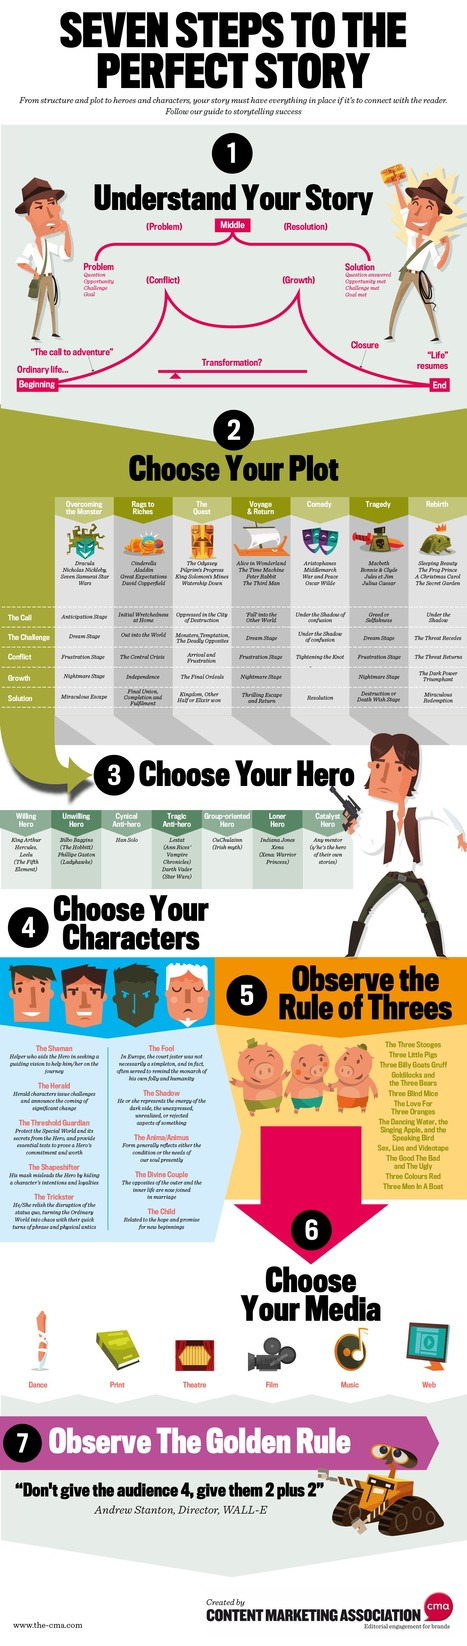 SEVEN STEPS TO THE PERFECT STORY [Fun Infographic] | Creative_Inspiration | Scoop.it